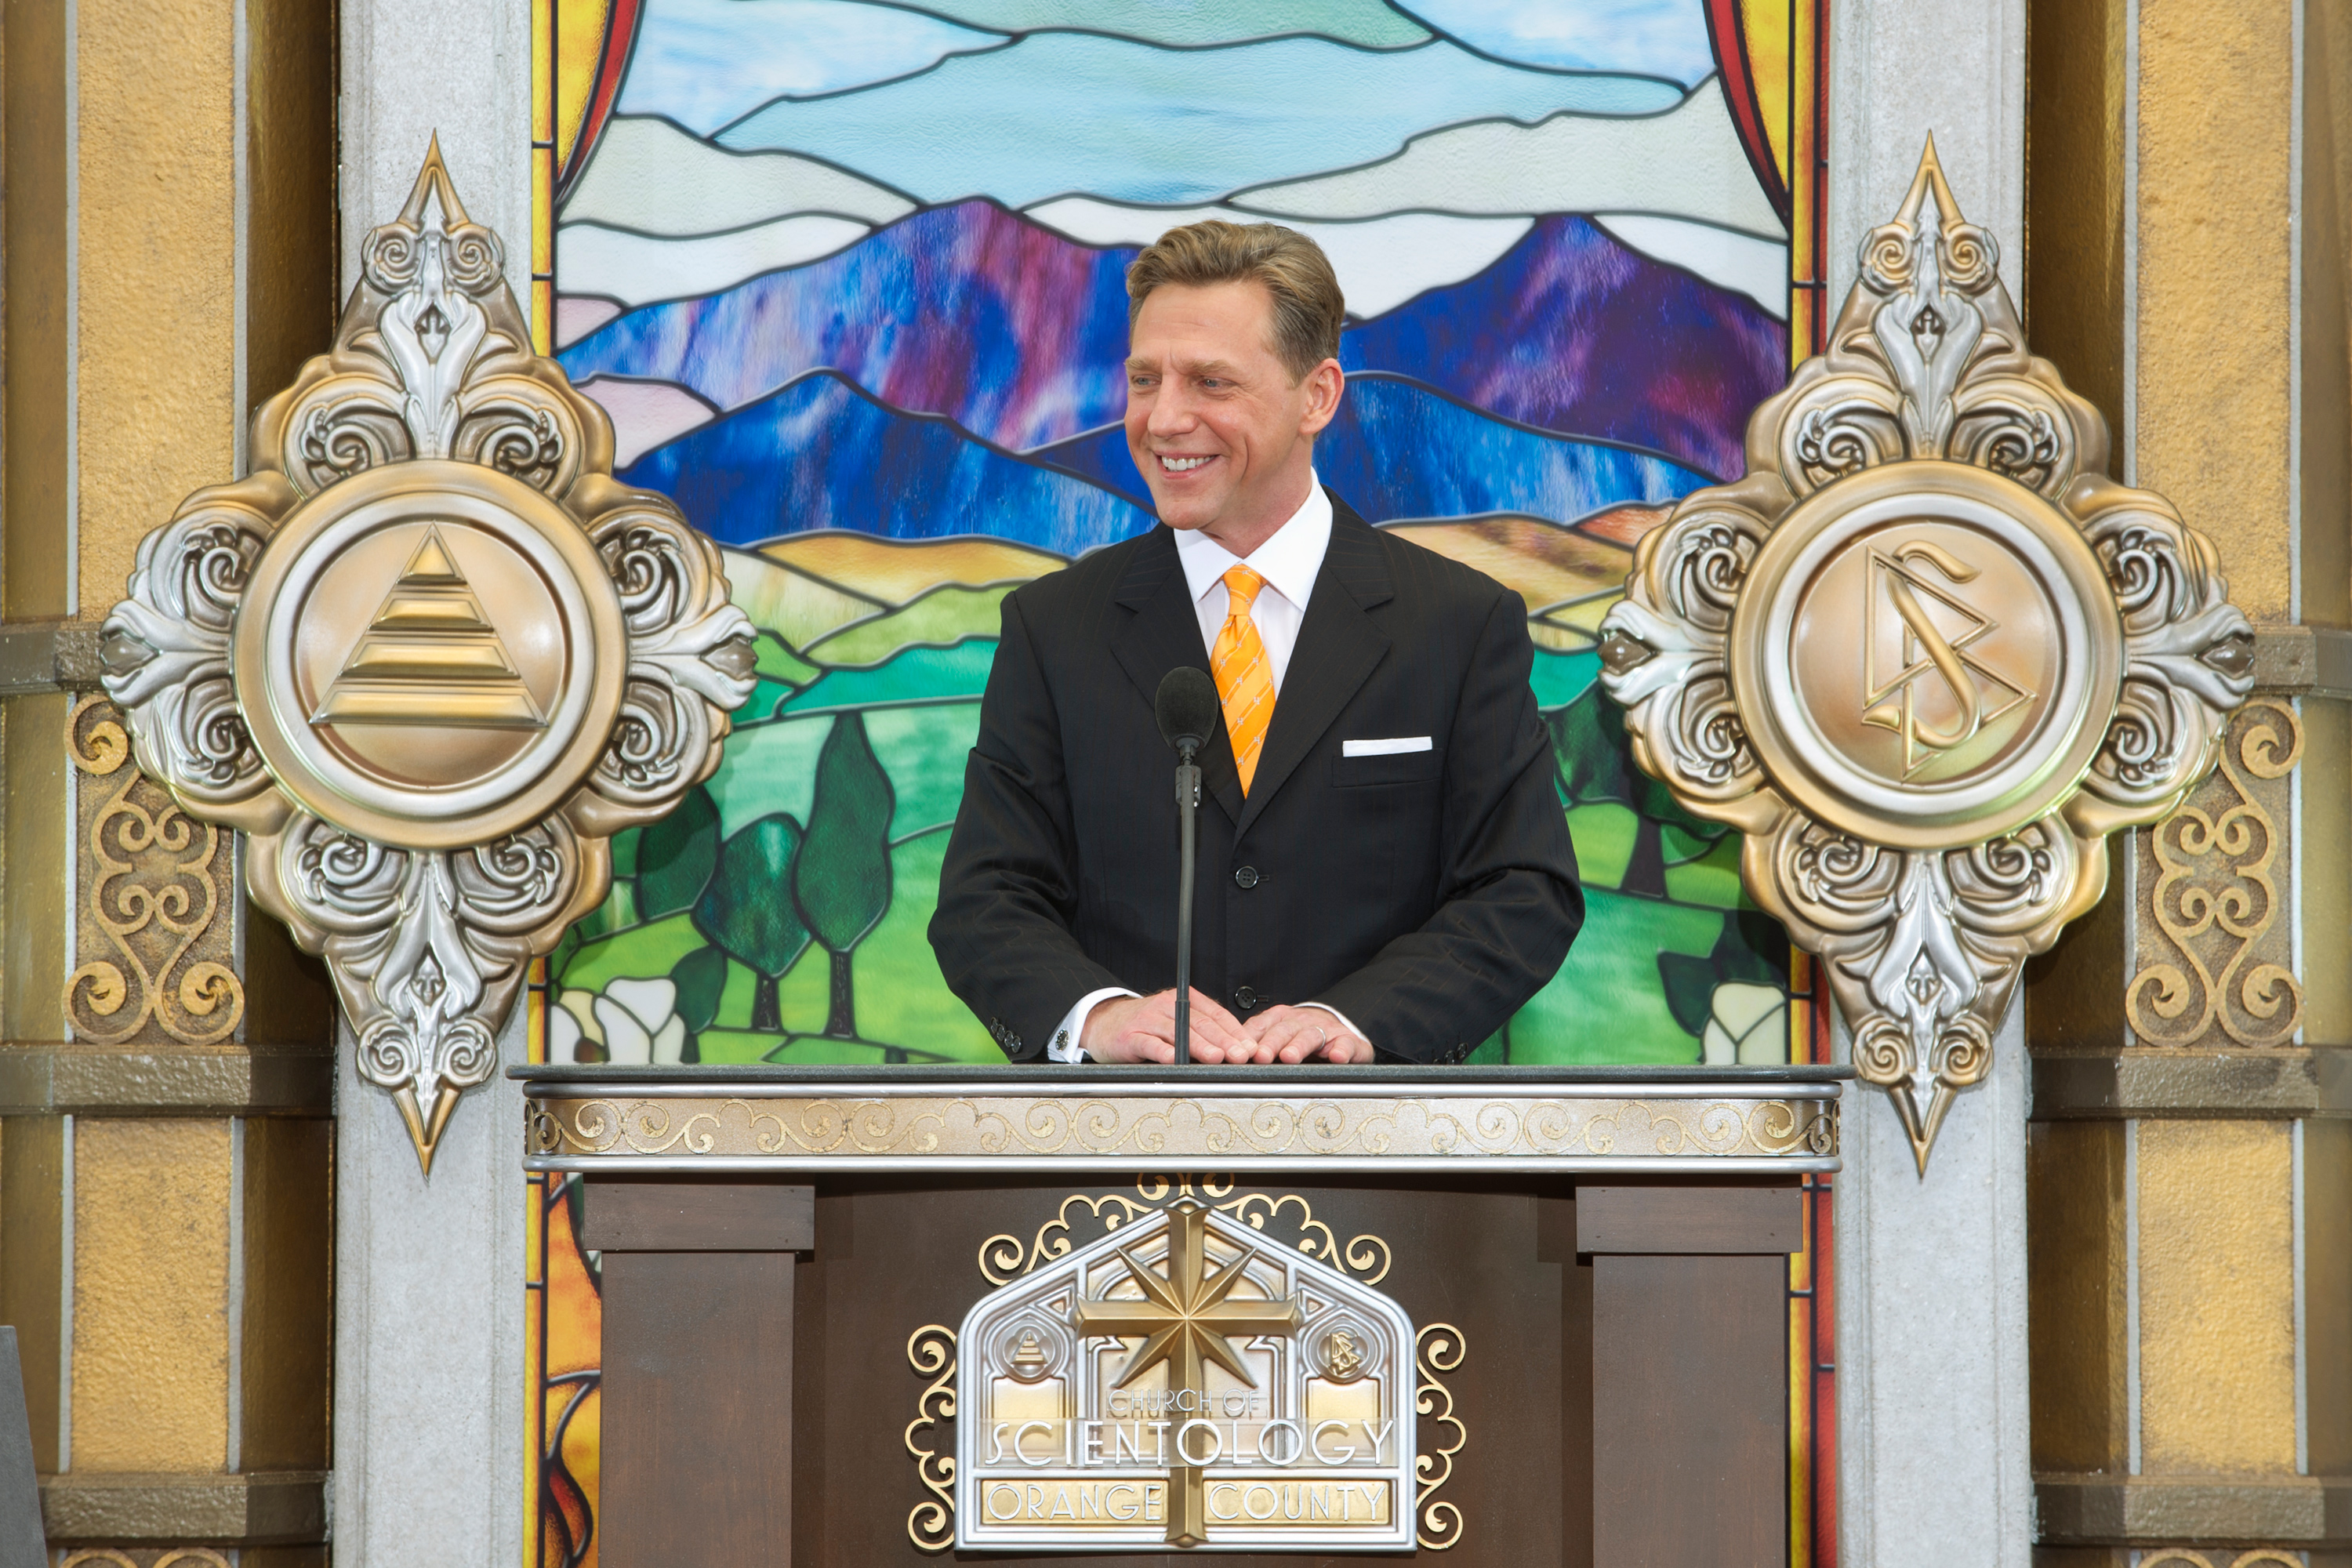 What type religion is Scientology?